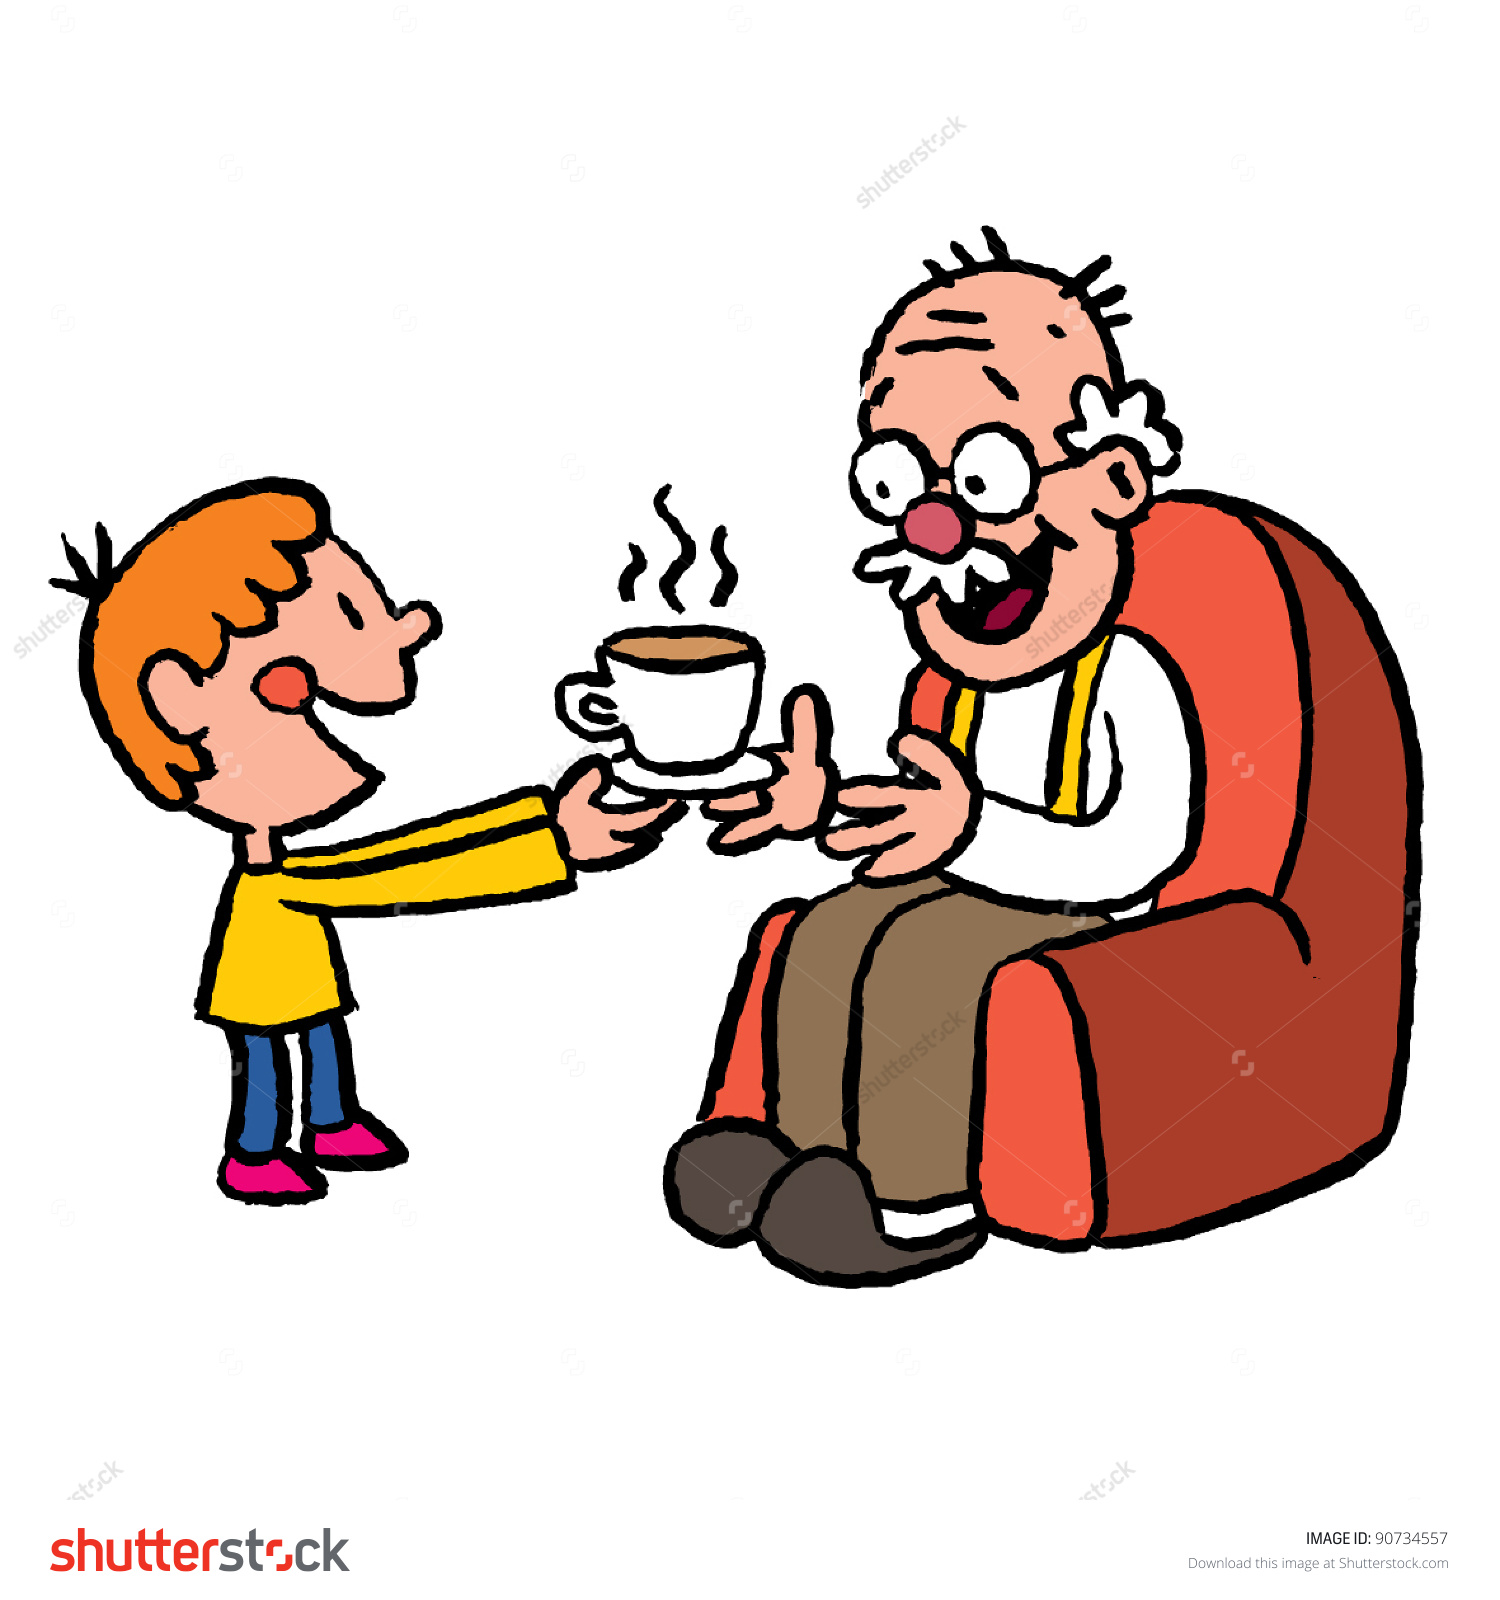 Grandpa and grandson clipart.